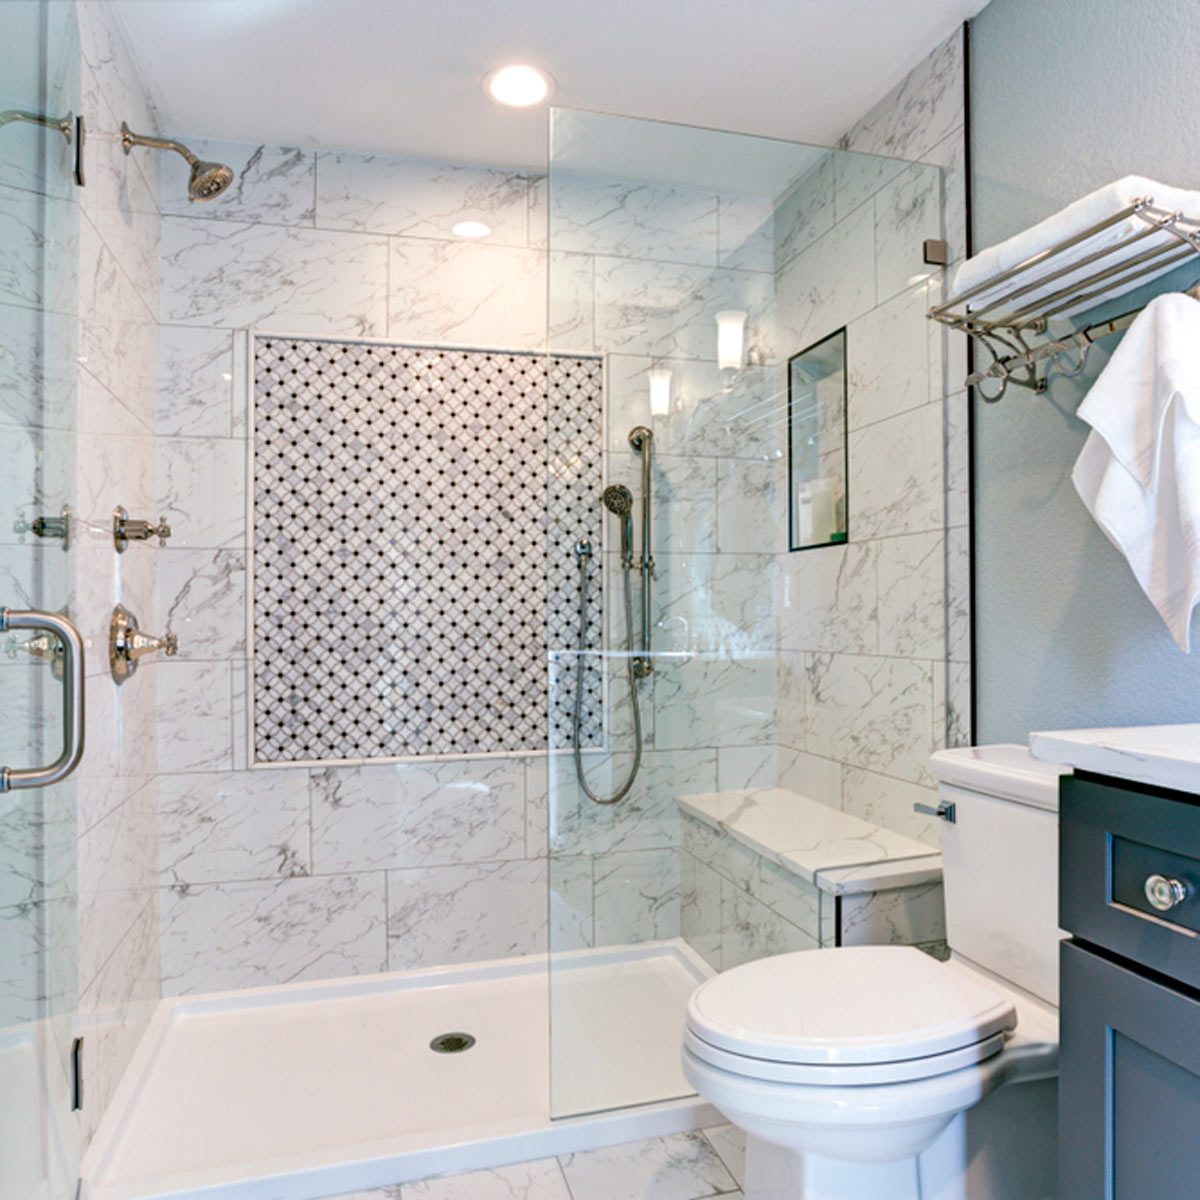 15 Remodeling Ideas that Will Pay Off in 2019   Family ... on Small Bathroom Remodel Ideas 2019  id=39895